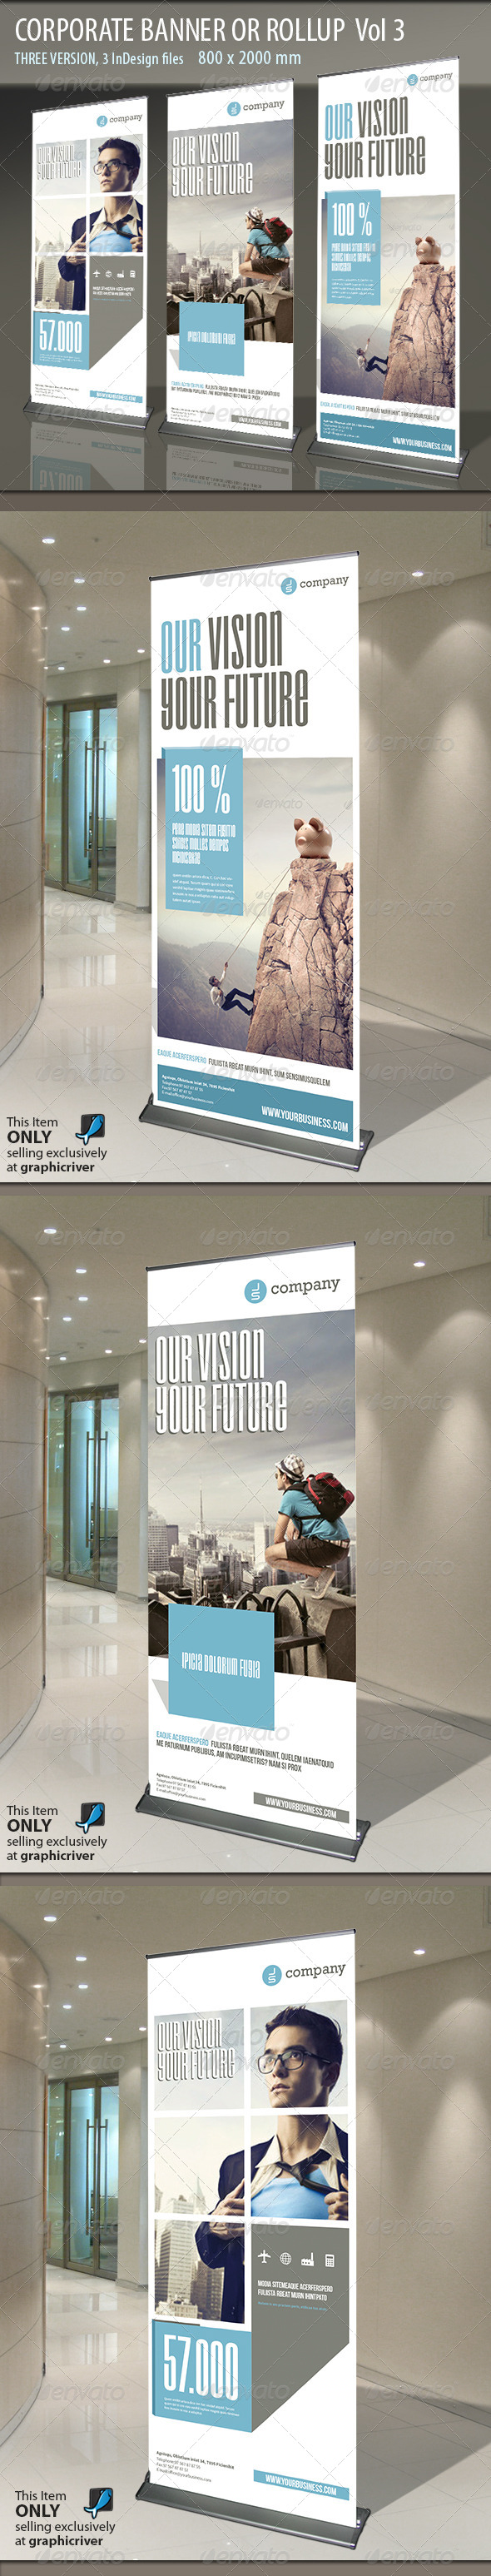 GraphicRiver Corporate Banner or Rollup Vol 3 5864778